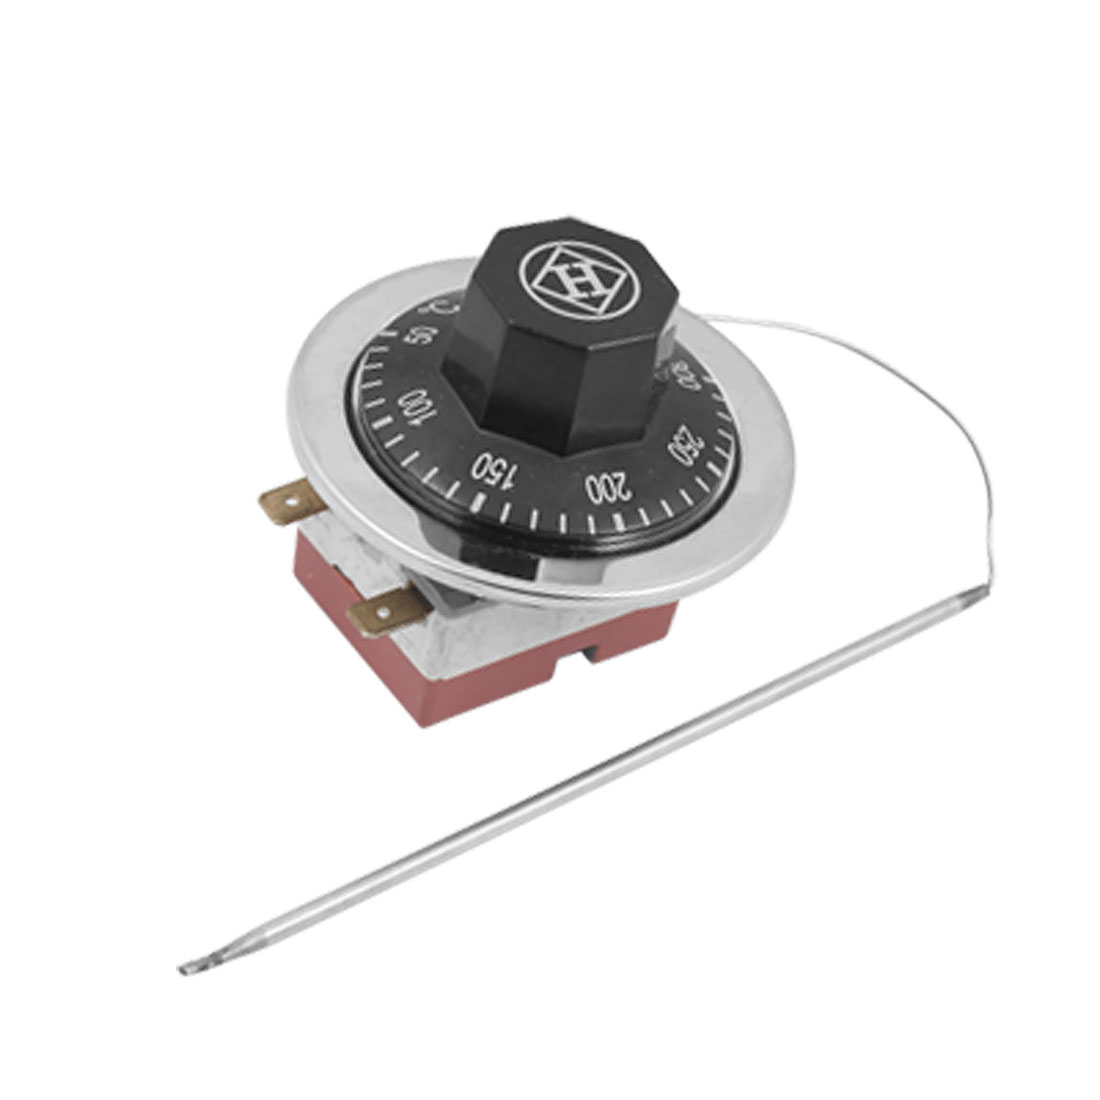 220V 16A 50-300 Degree Celsius NC Temperature Control Capillary Thermostat for Electric Oven